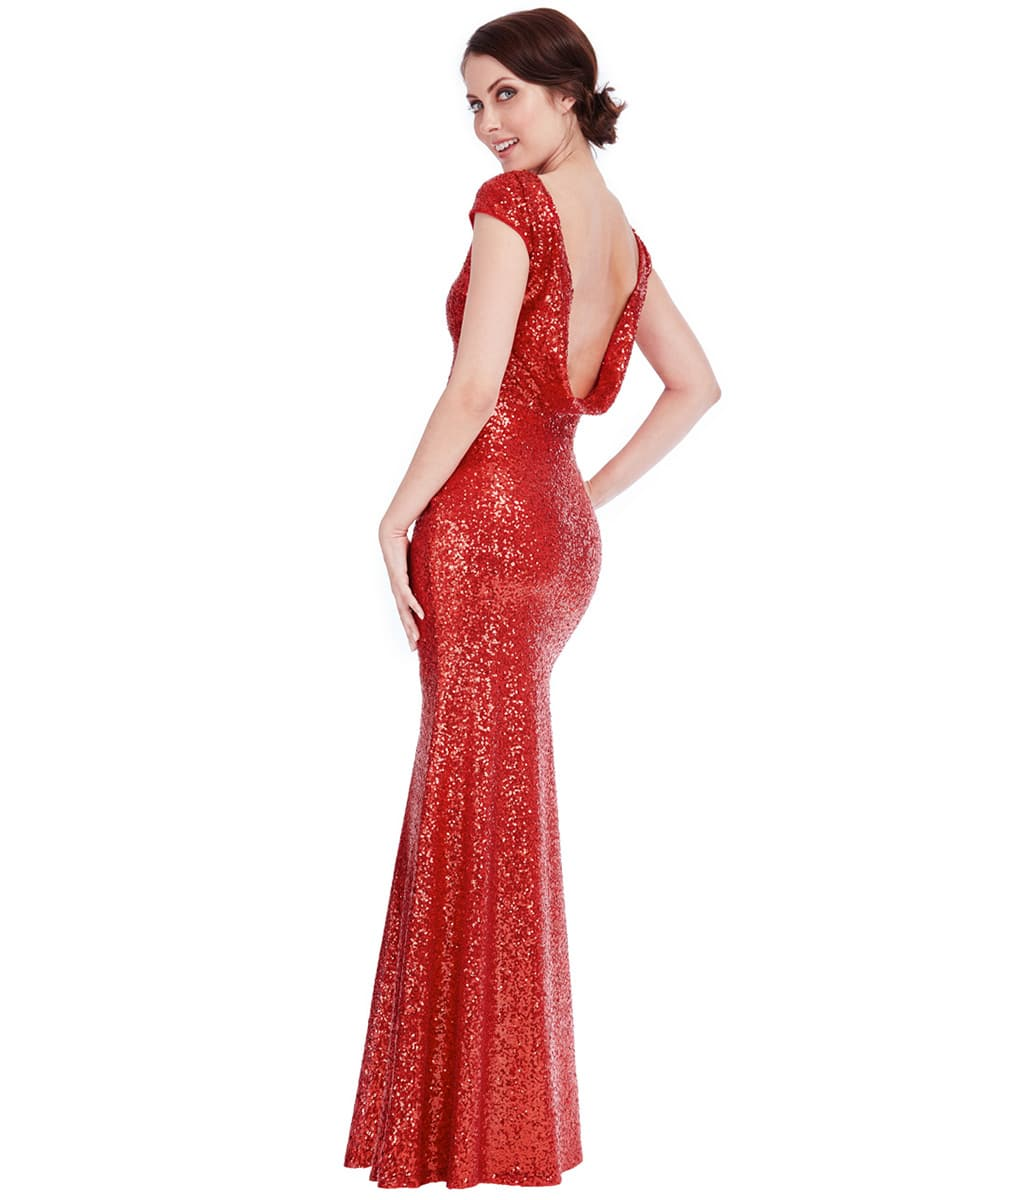 f1367ffe70 City Goddess - Red Sequin Cowl Neck Gown